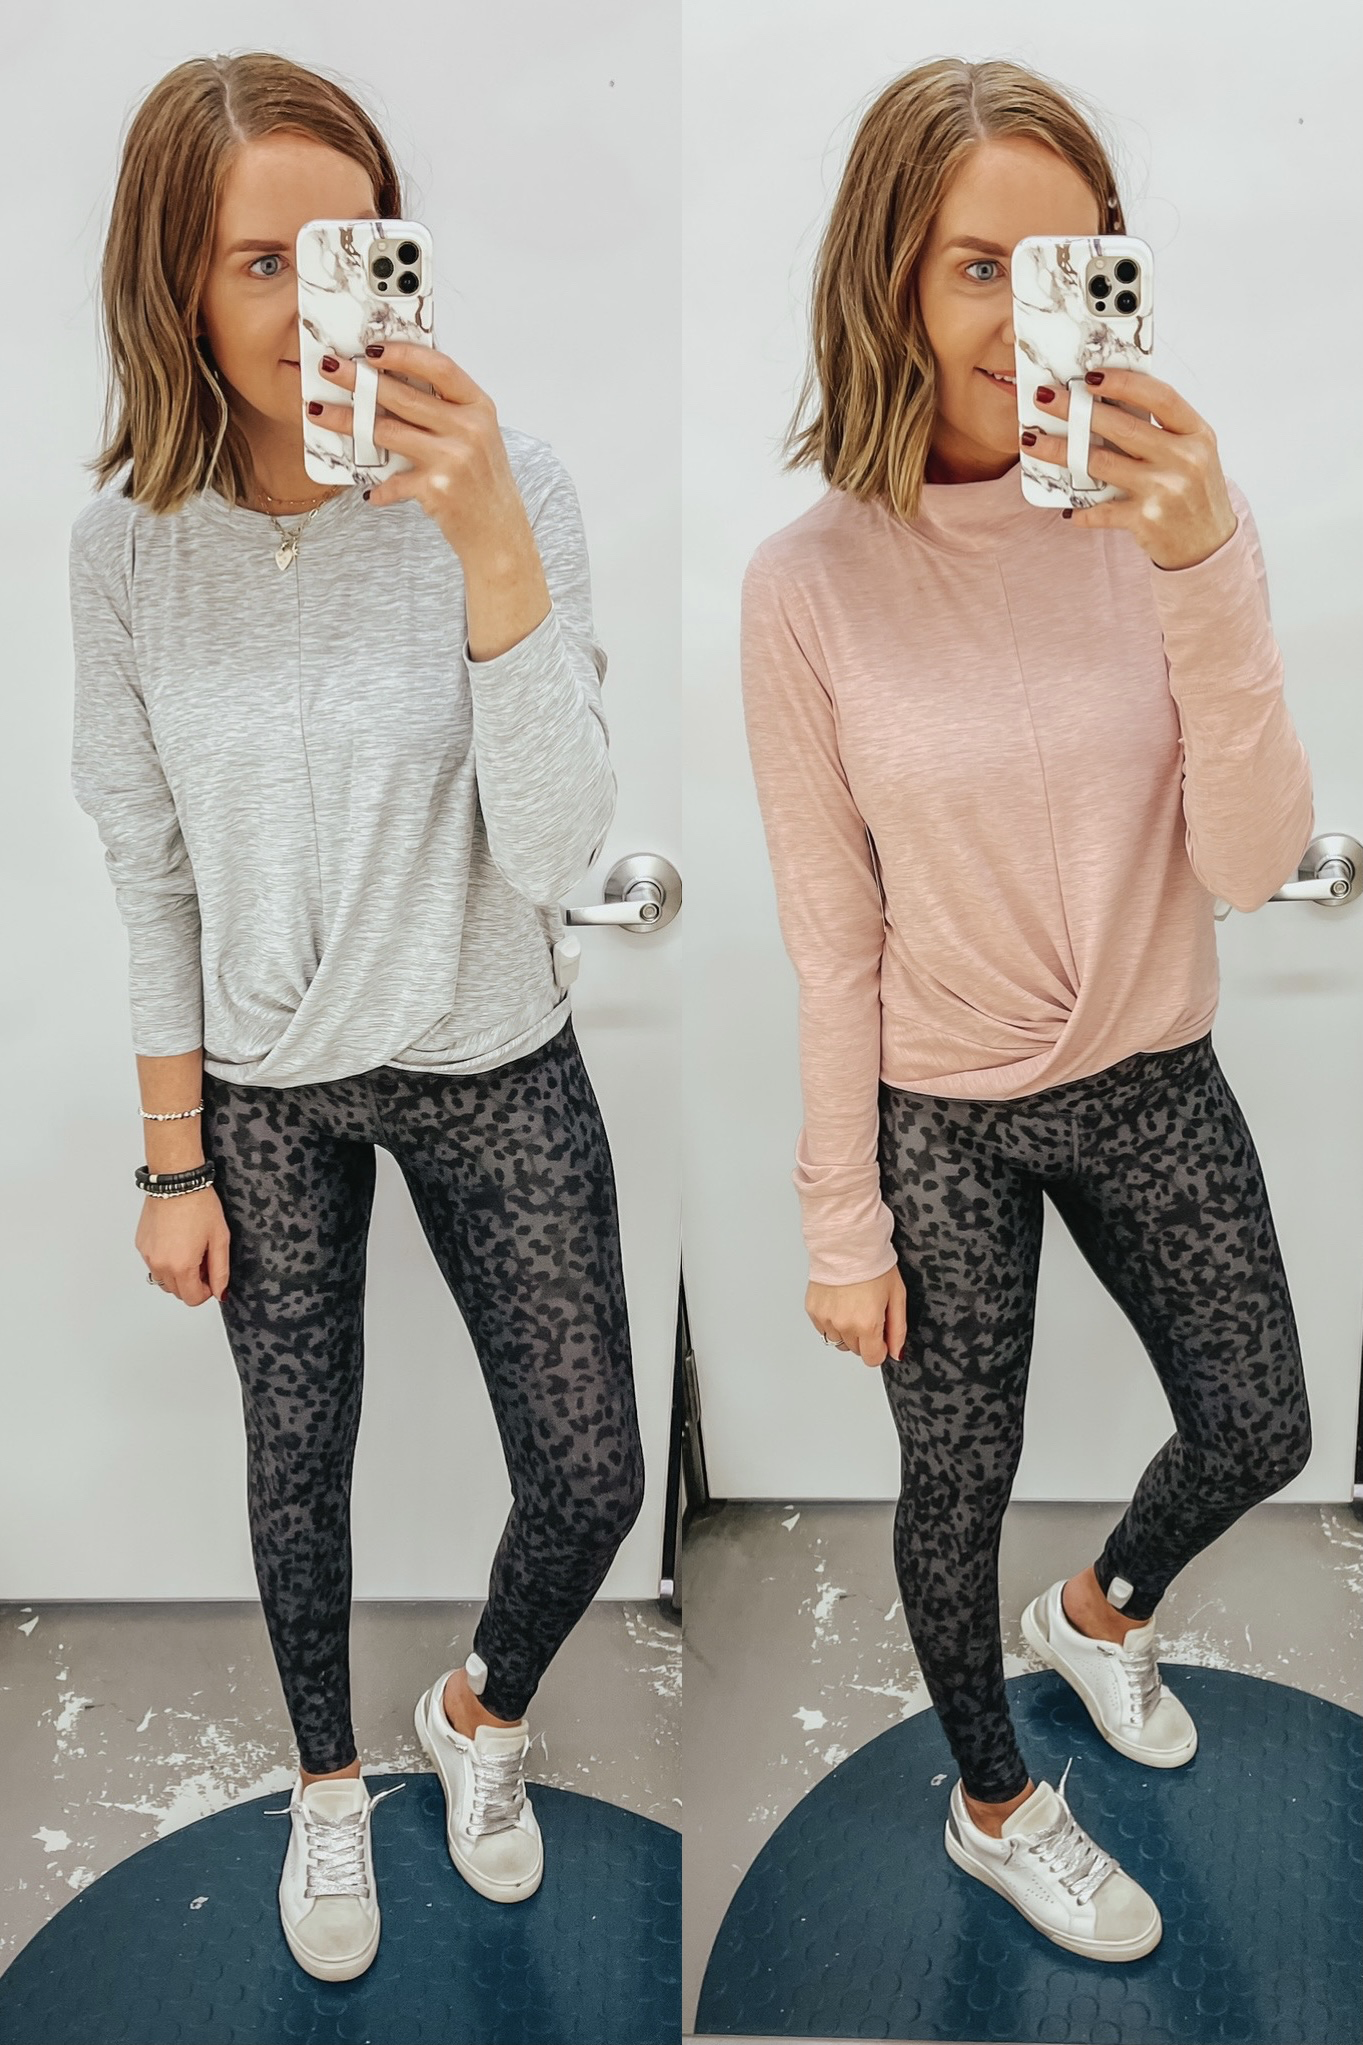 Old Navy activewear, athleisure outfit, leopard leggings